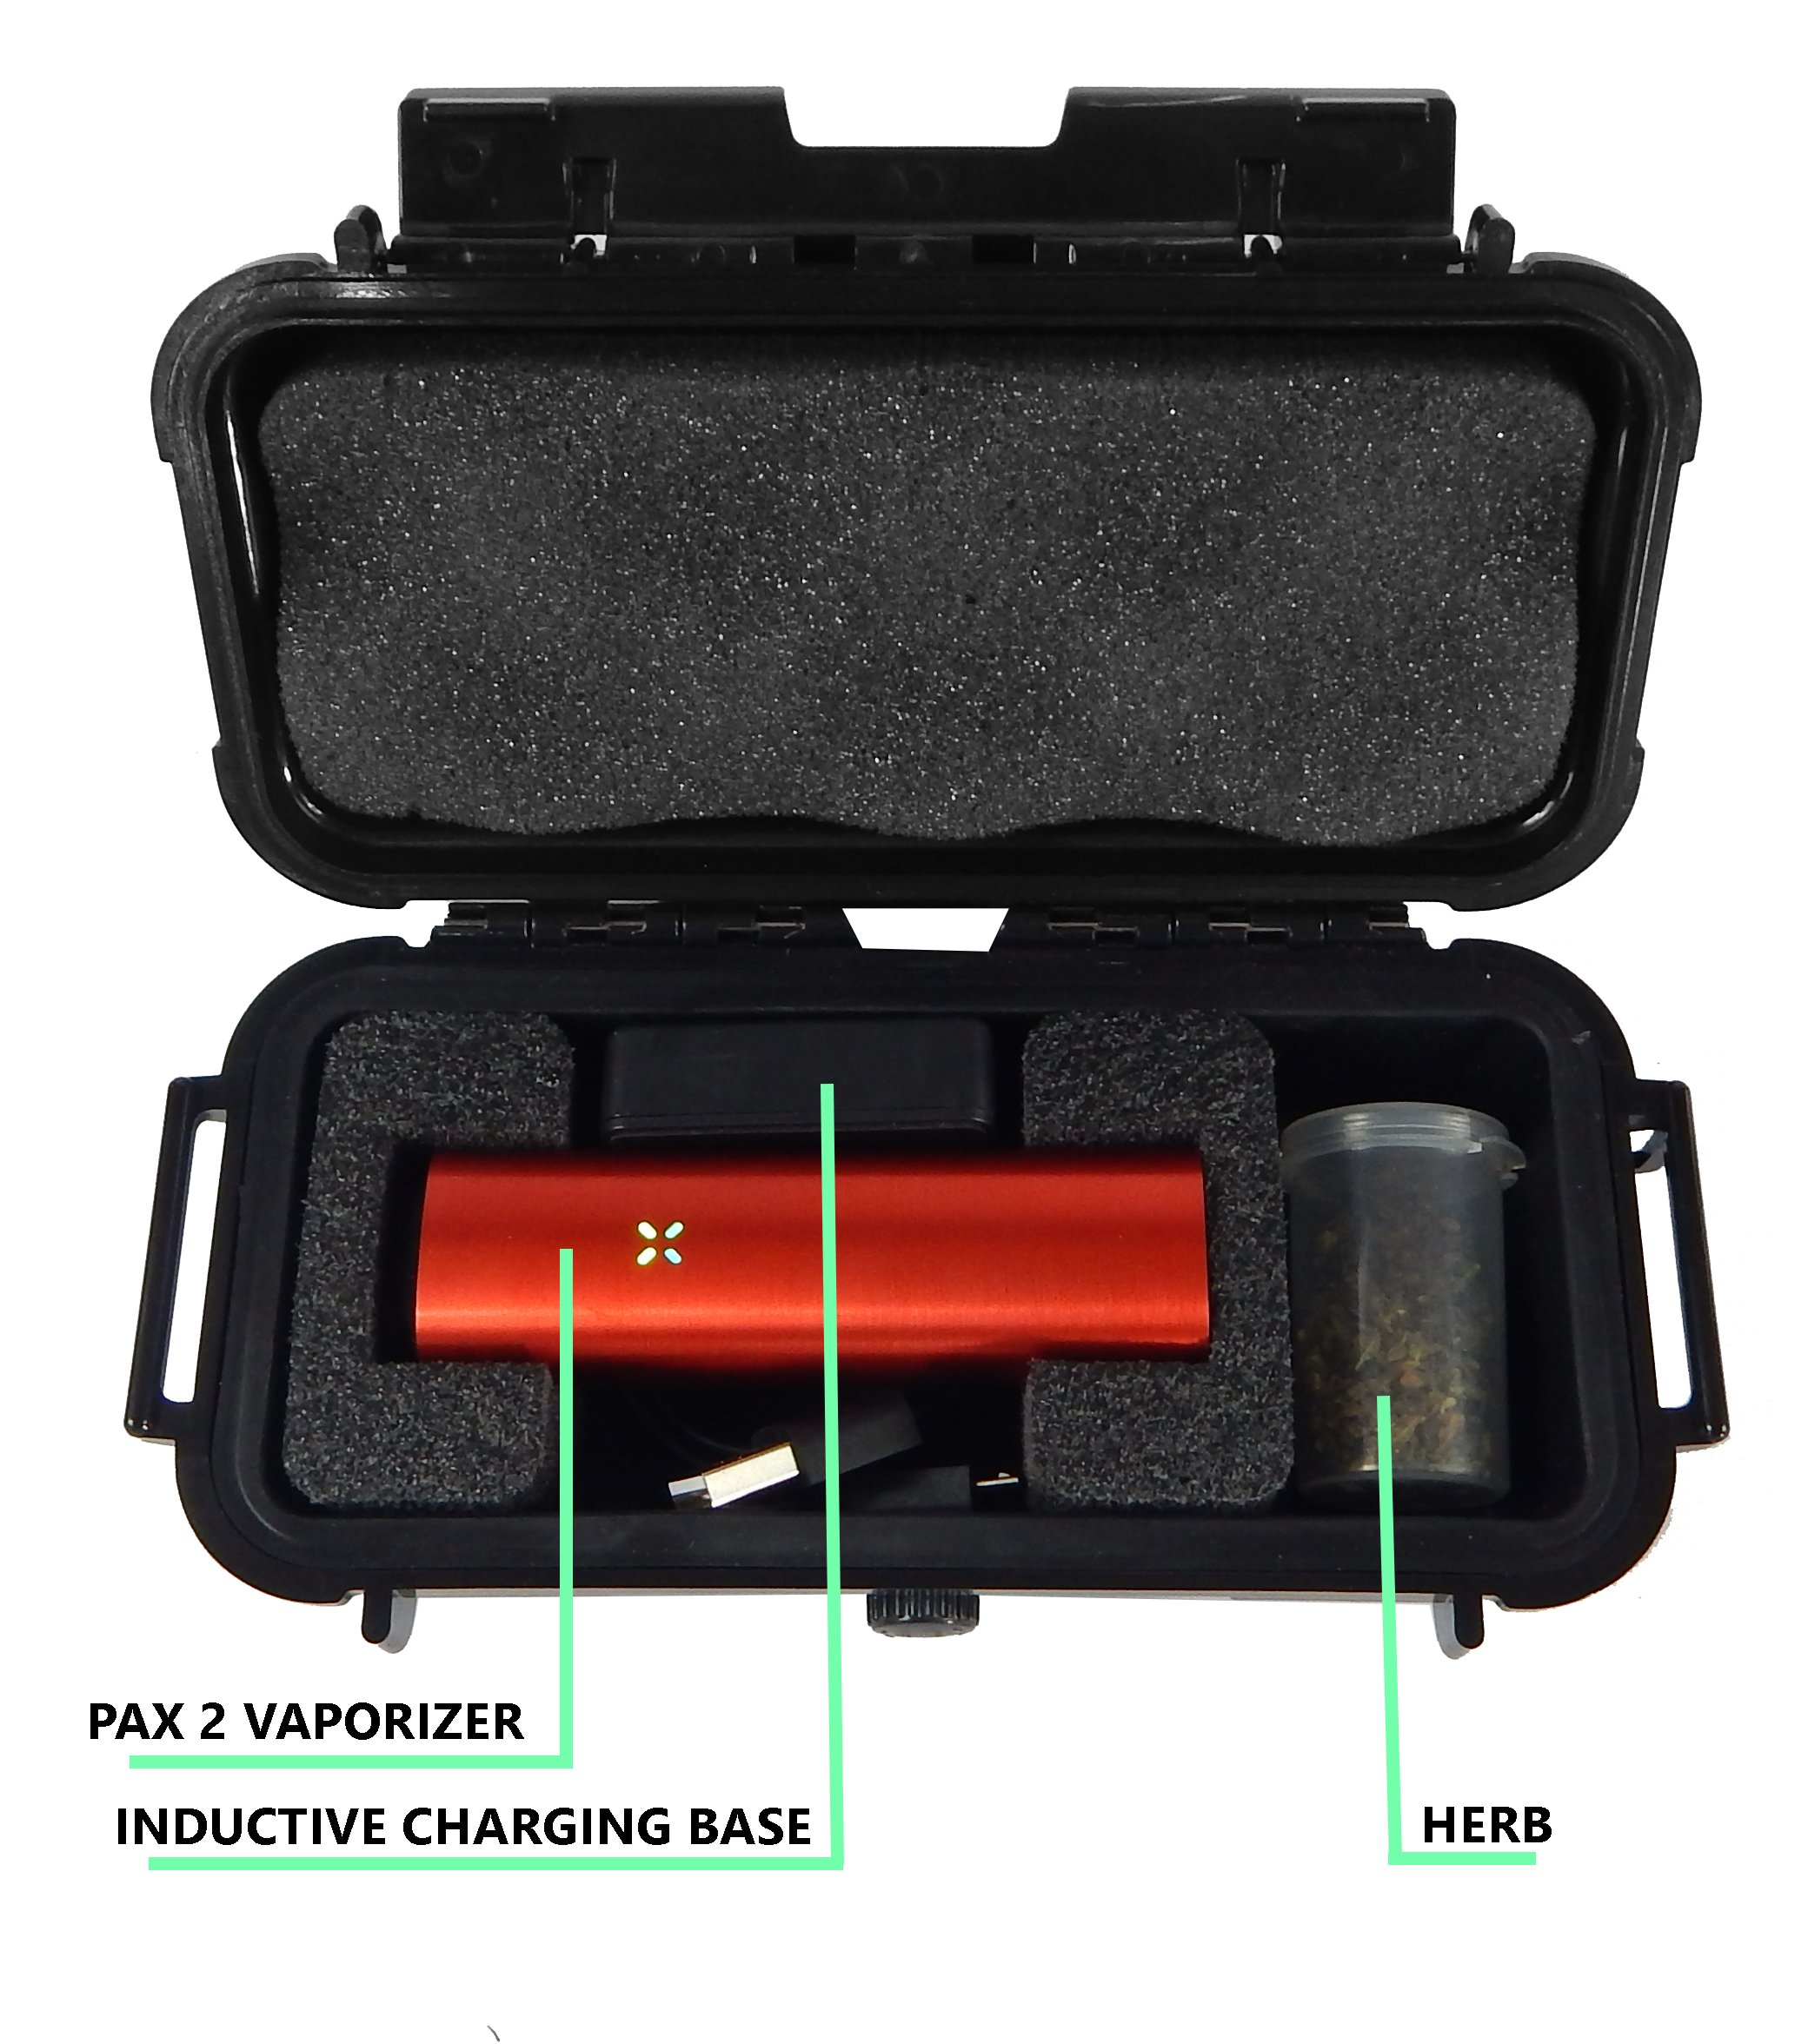 CLOUD/TEN Pax 2 and Pax 3 Custom Case - Smell Proof Odor Resistant Protective Airtight Carry Box - Foam Specially Designed to Hold Pax 2 , Charger and Container Slot - Comes with Free Herb Canister by CASEMATIX (Image #2)